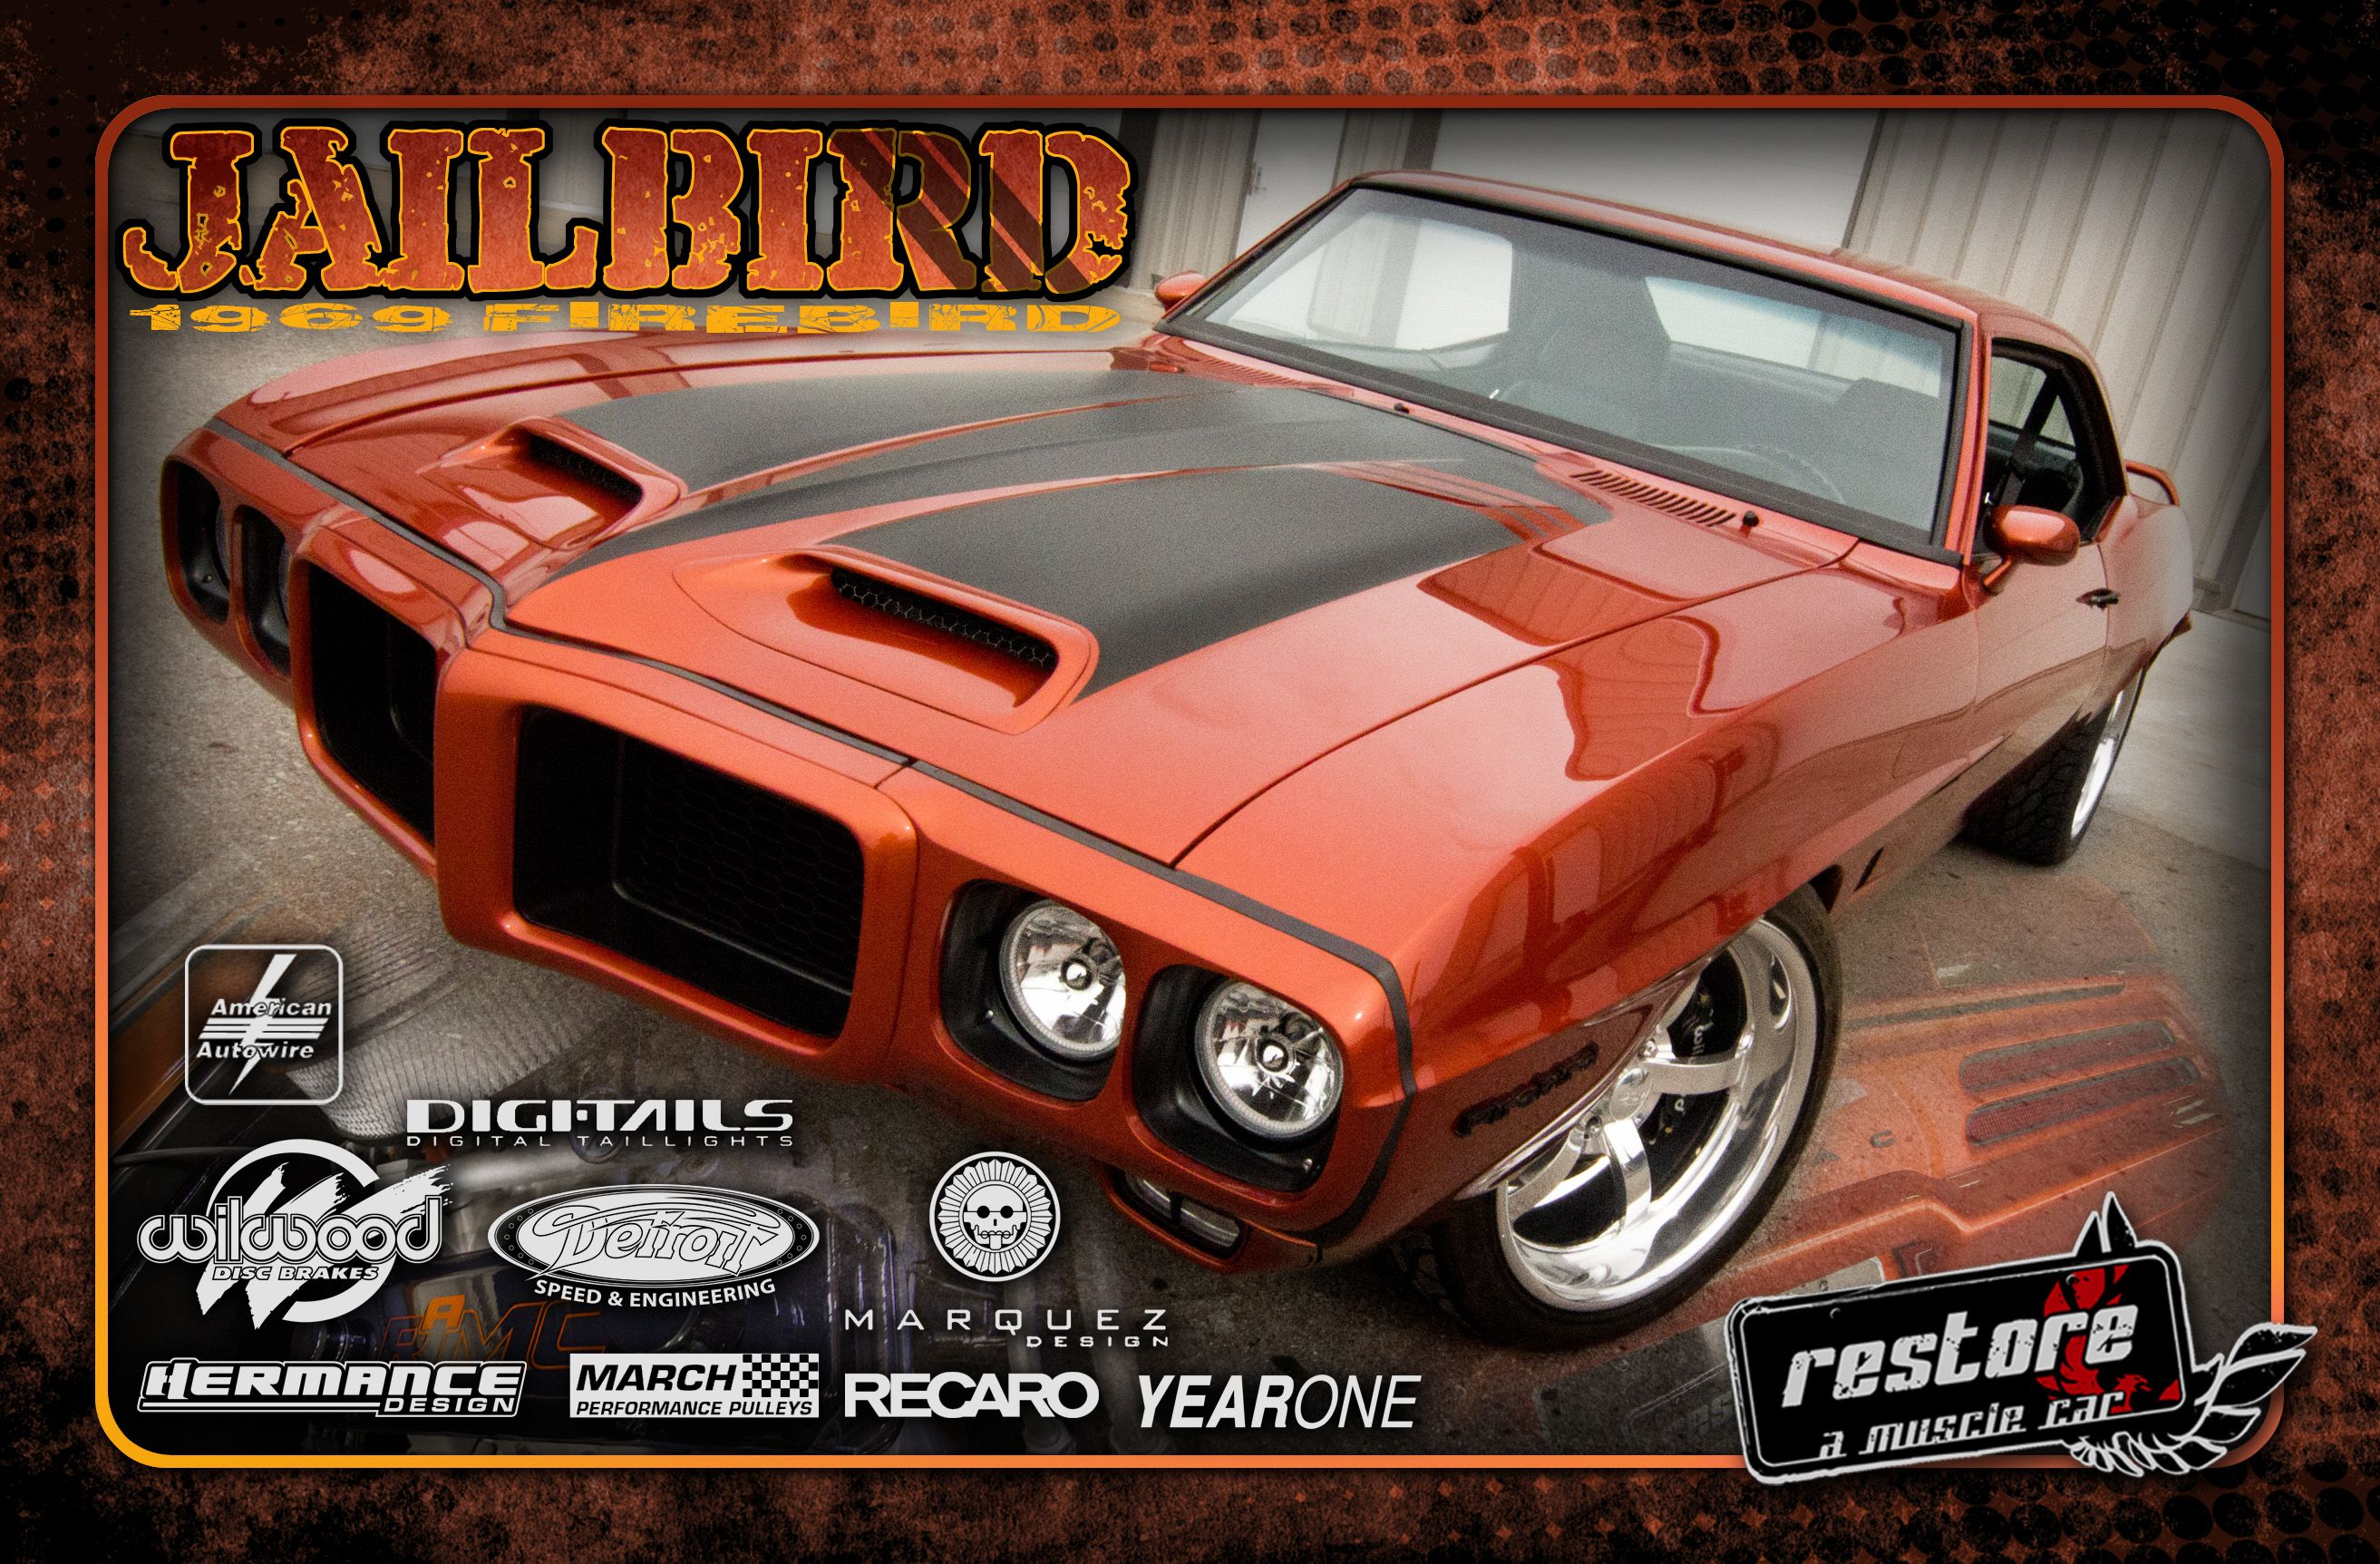 69 firebird by restore a muscle car ready for sema